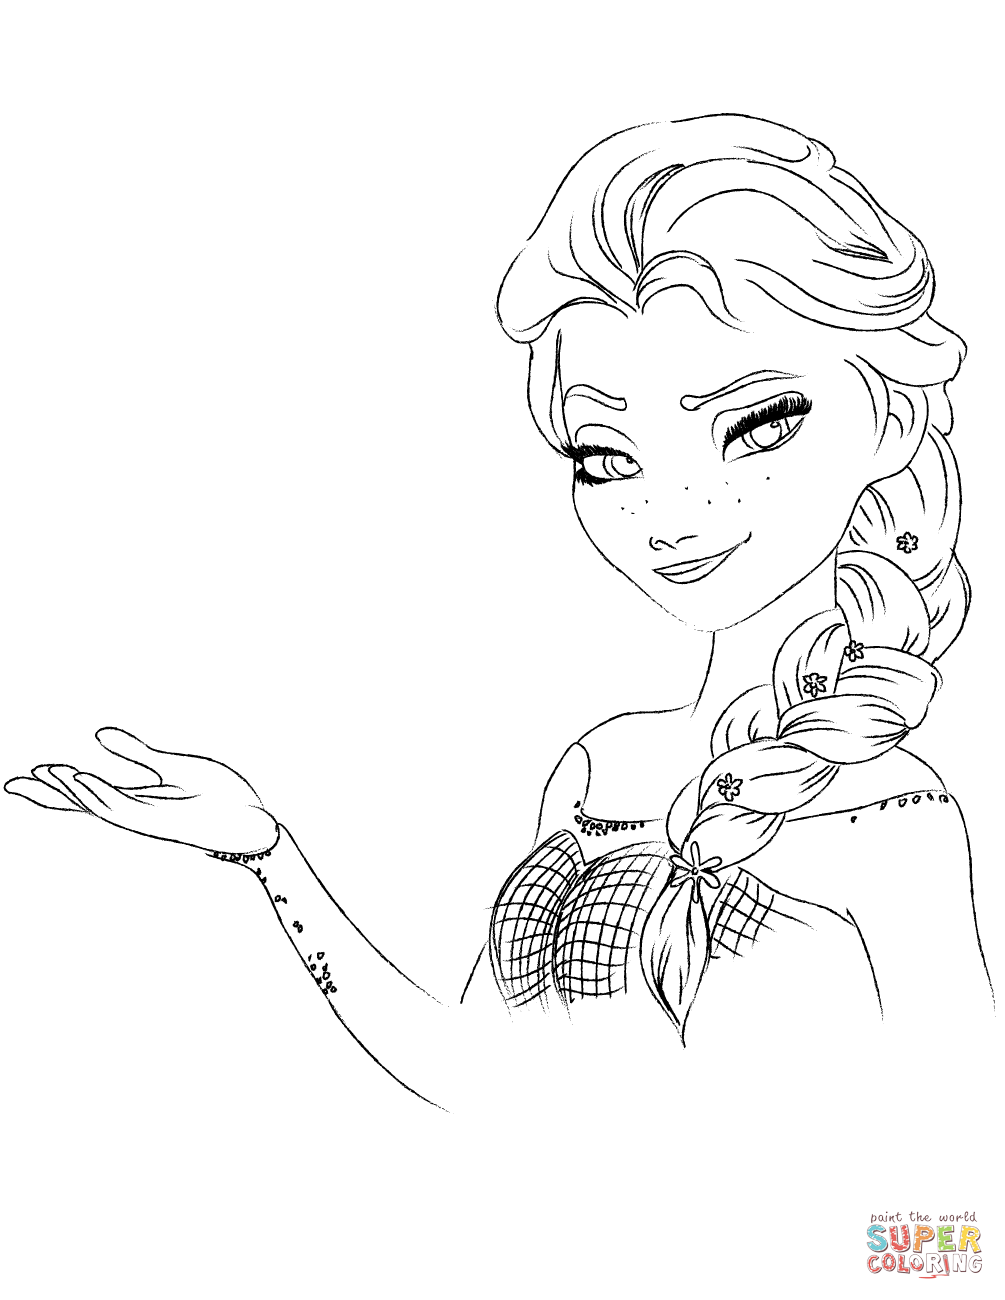 Coloring Pages Frozen Games : Elsa from the frozen coloring pages